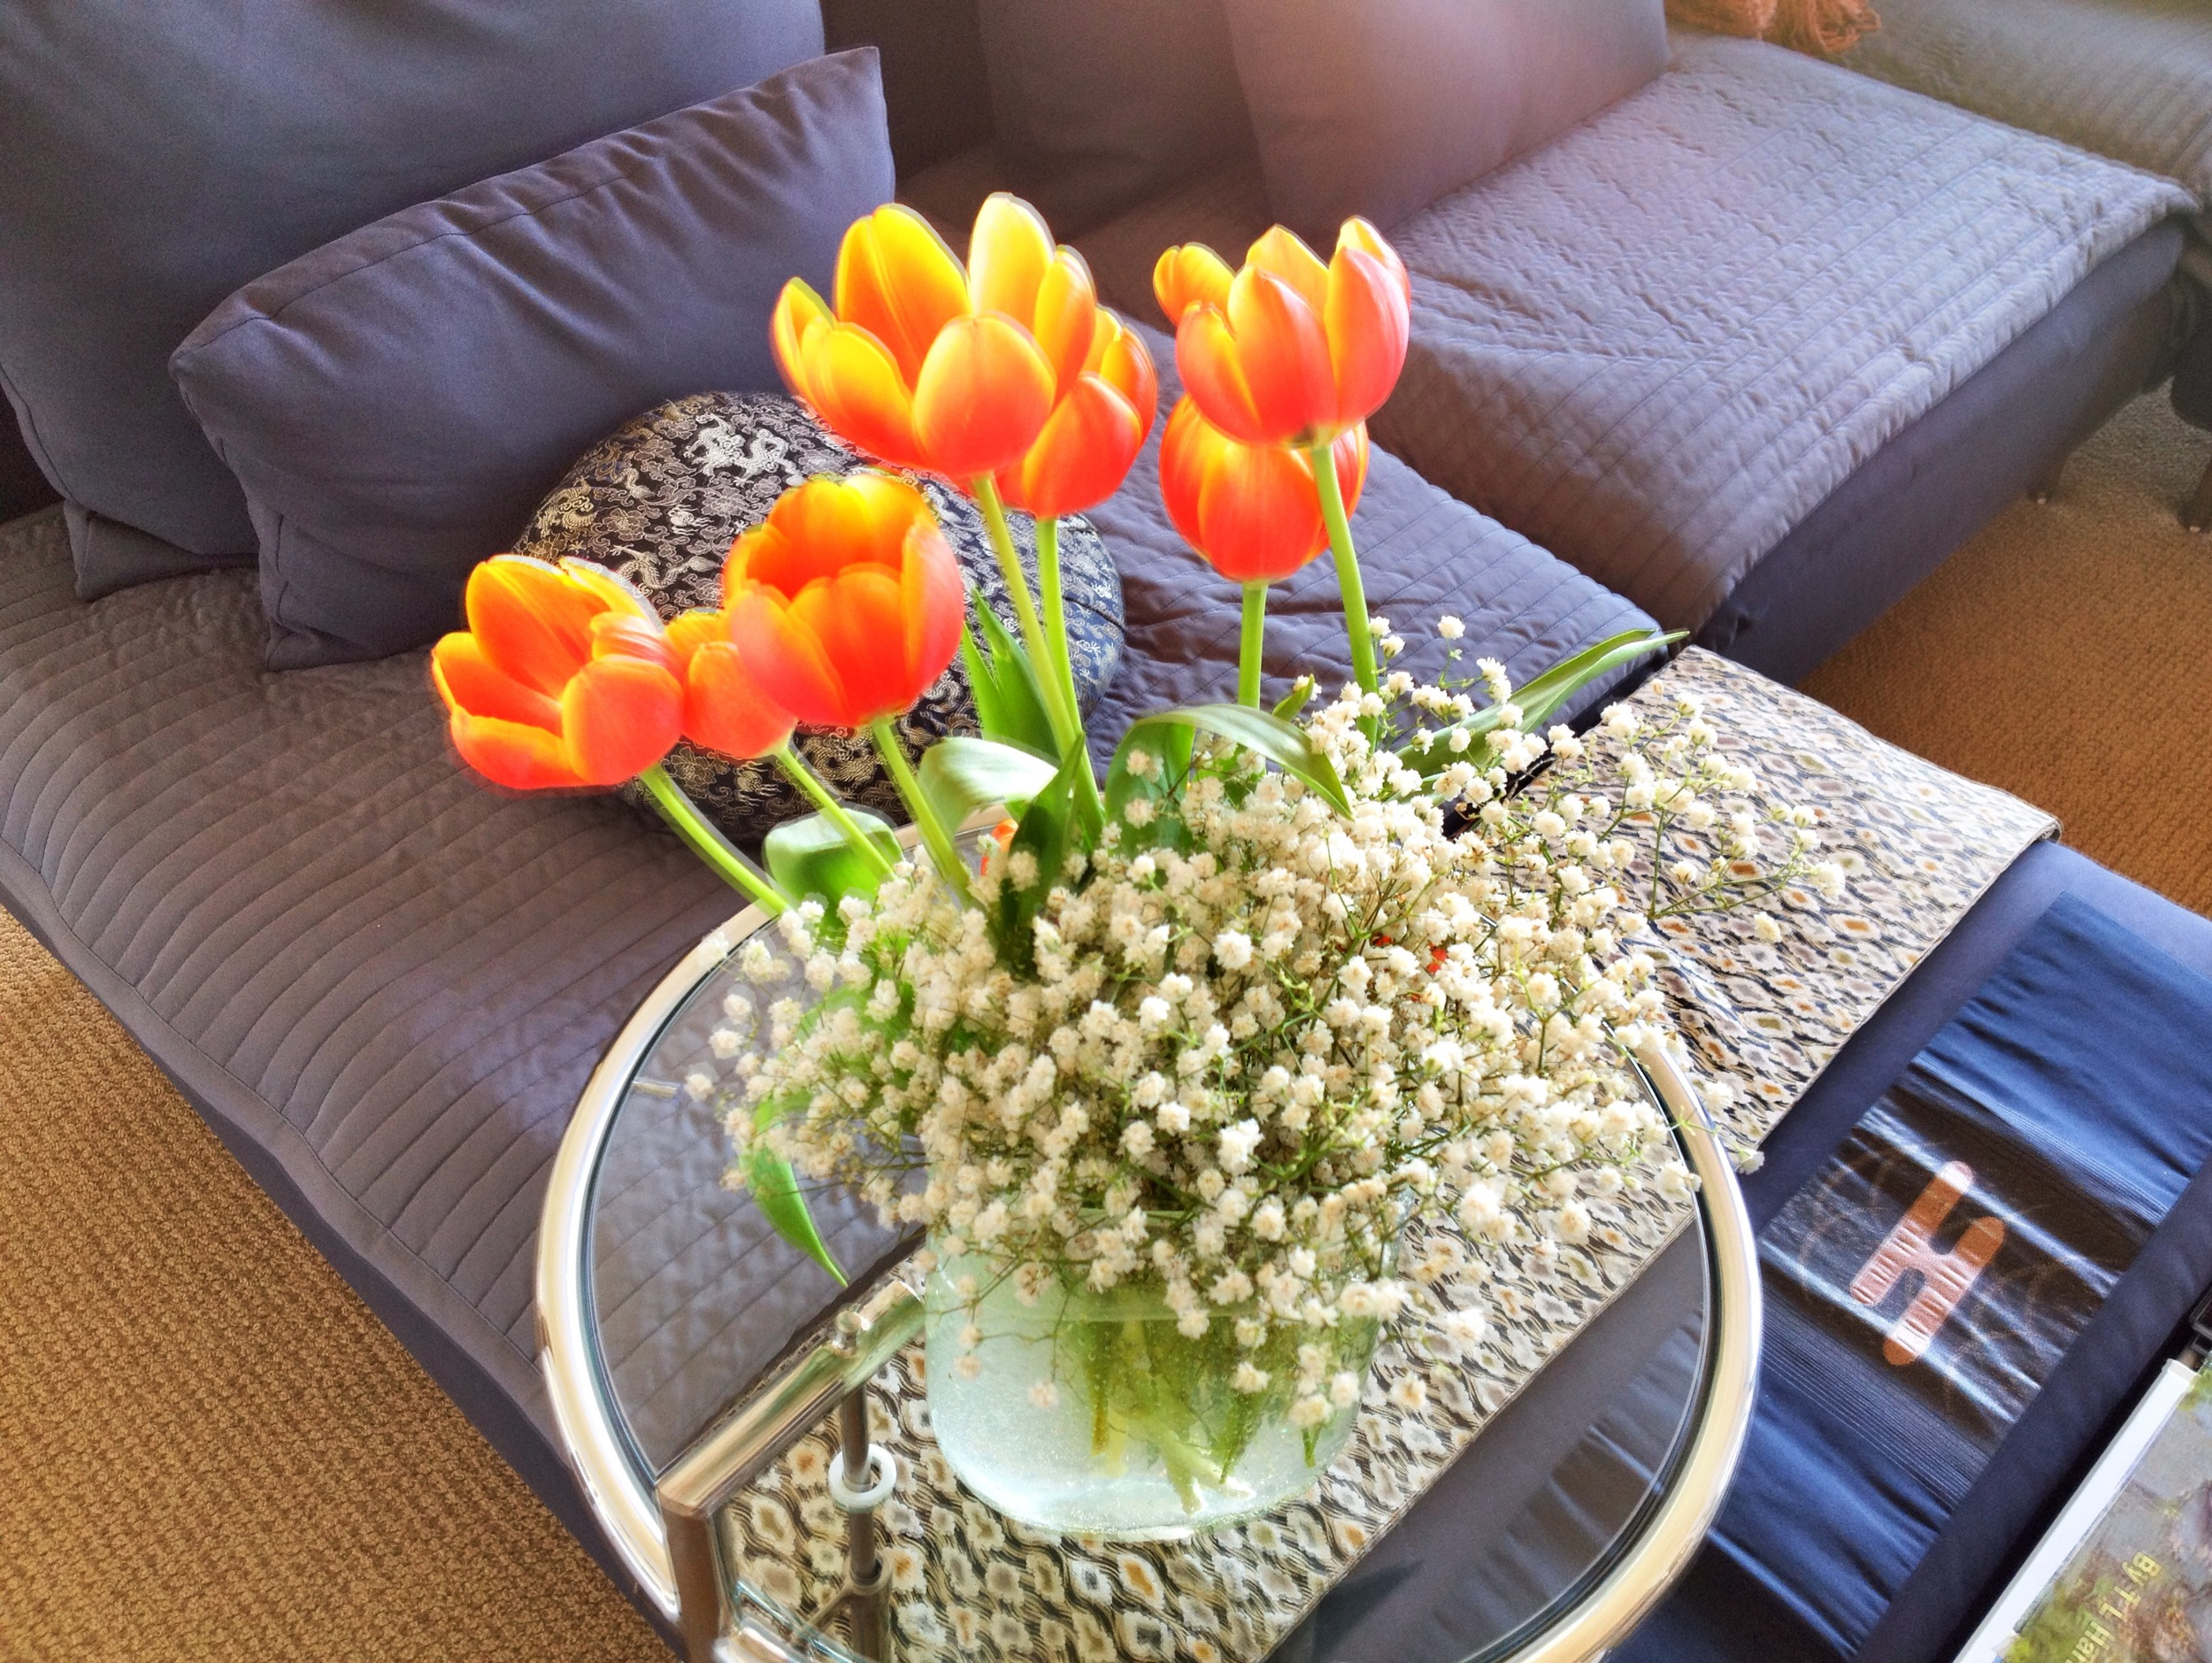 Fresh Flowers always add to the energy of a room and lift your spirits!